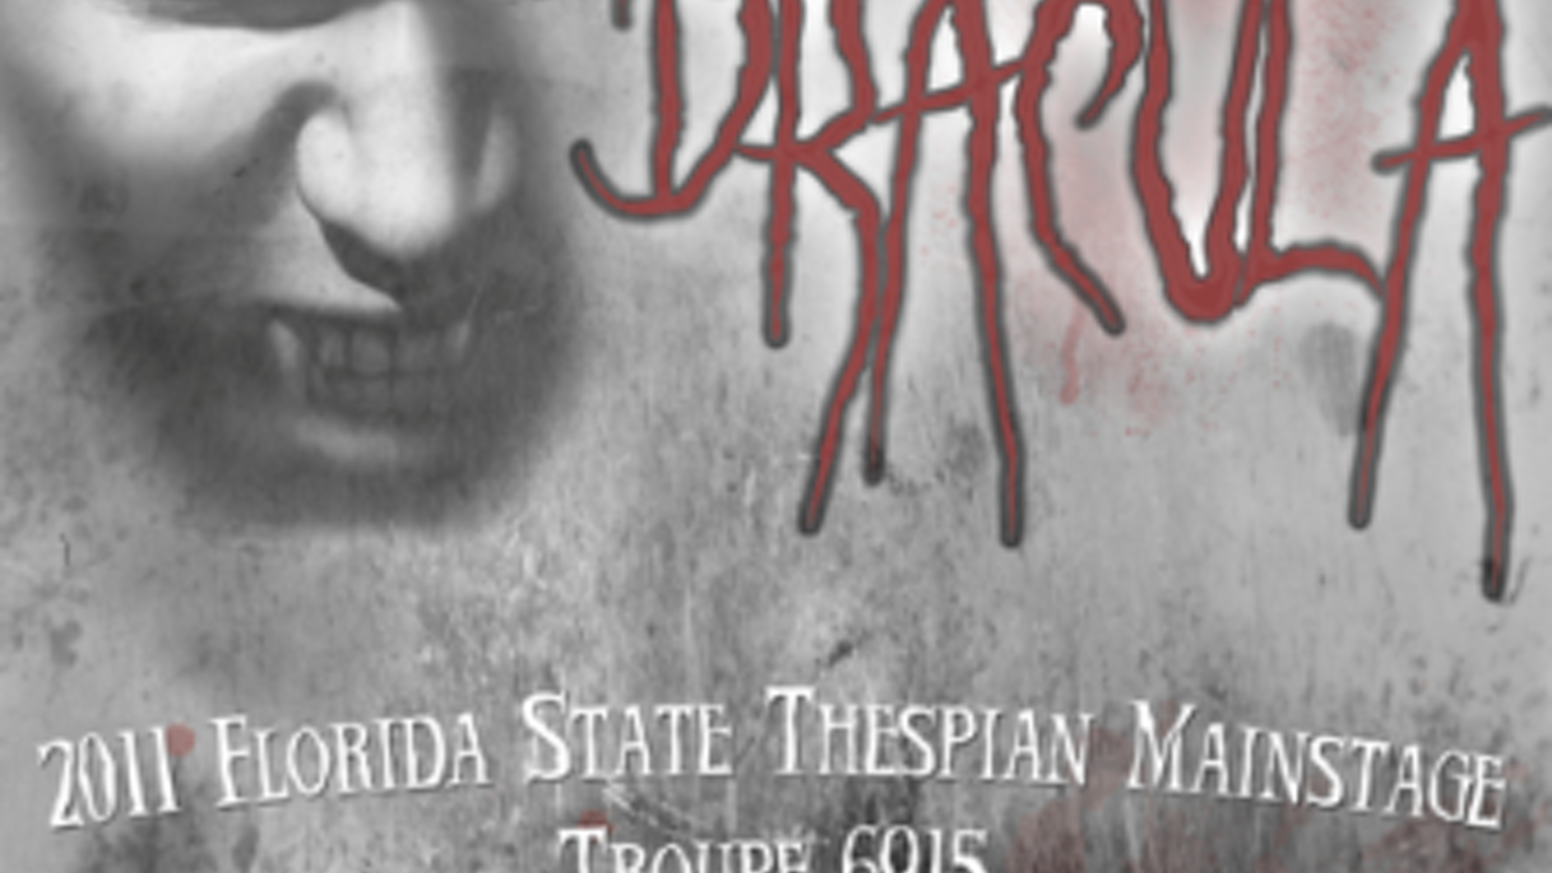 Dracula's Bloody Drive: The Voyage of Troupe 6-9-1-5 by Thespian